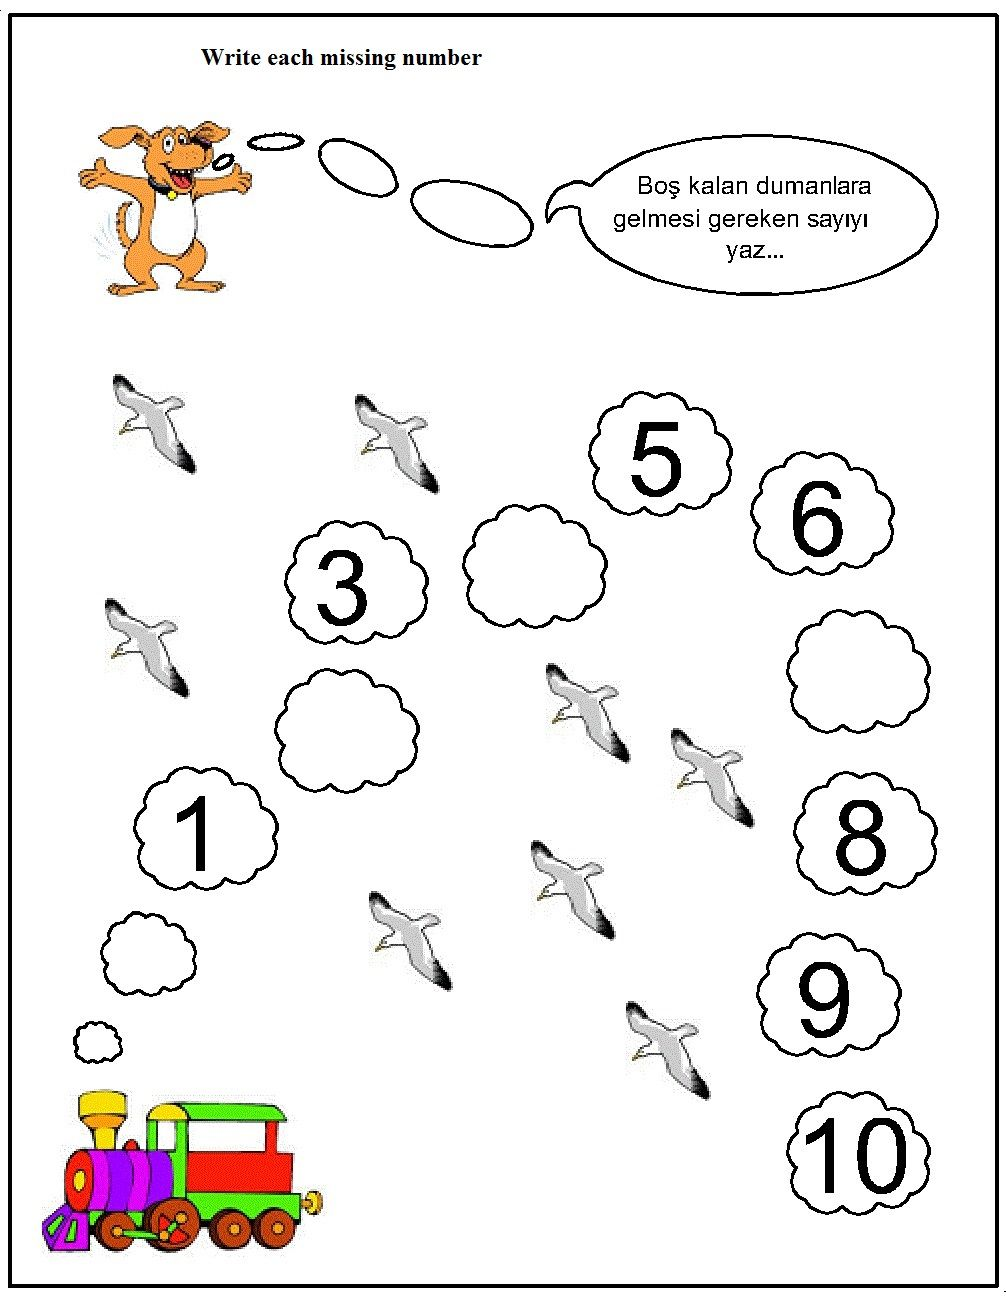 Missing Number Worksheet For Kids 1 10 Crafts And Worksheets For